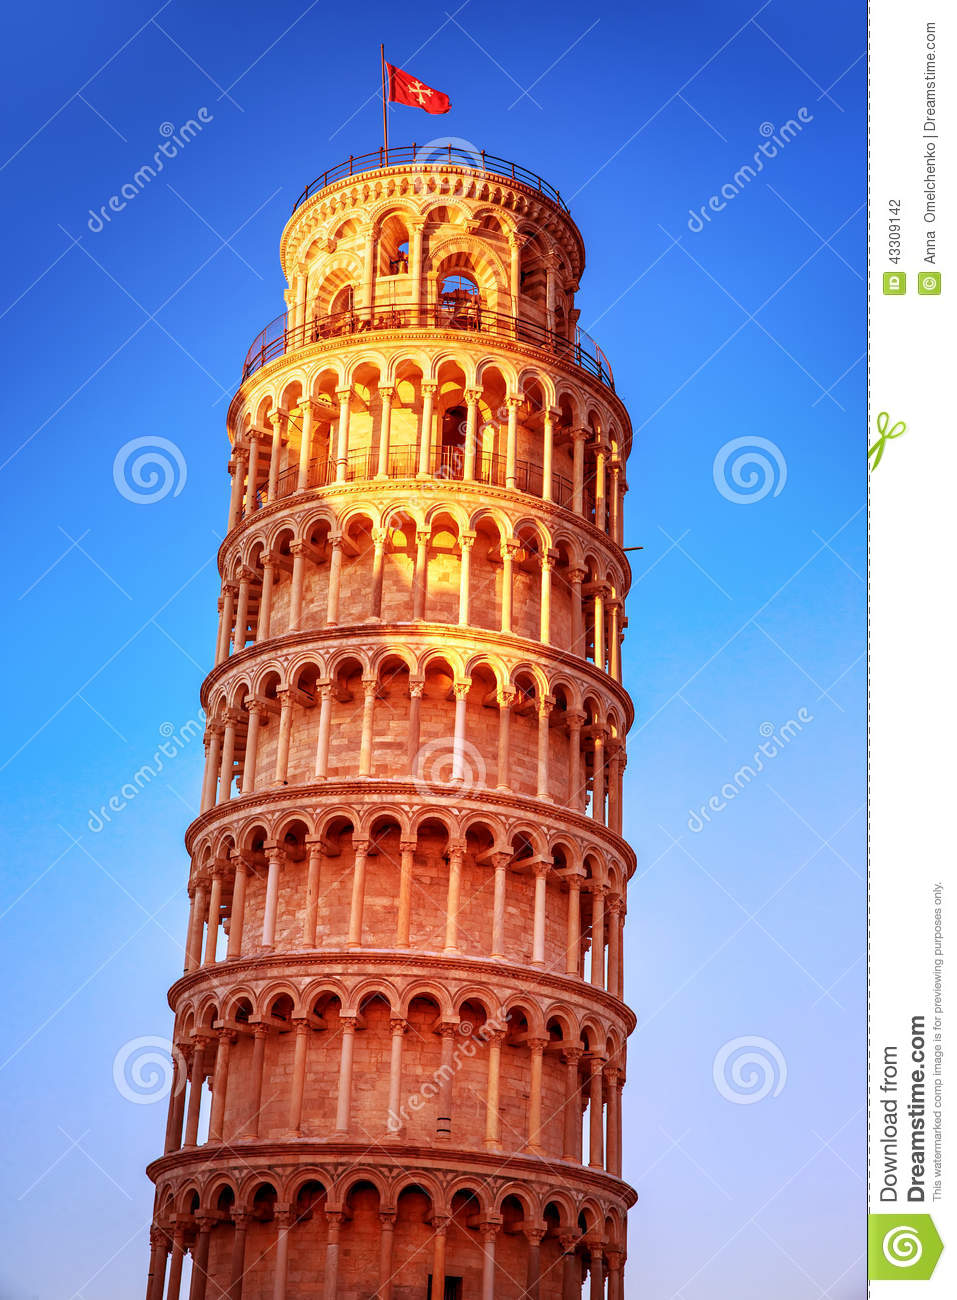 Leaning tower of pisa stock photo image of renaissance for Famous landmarks in